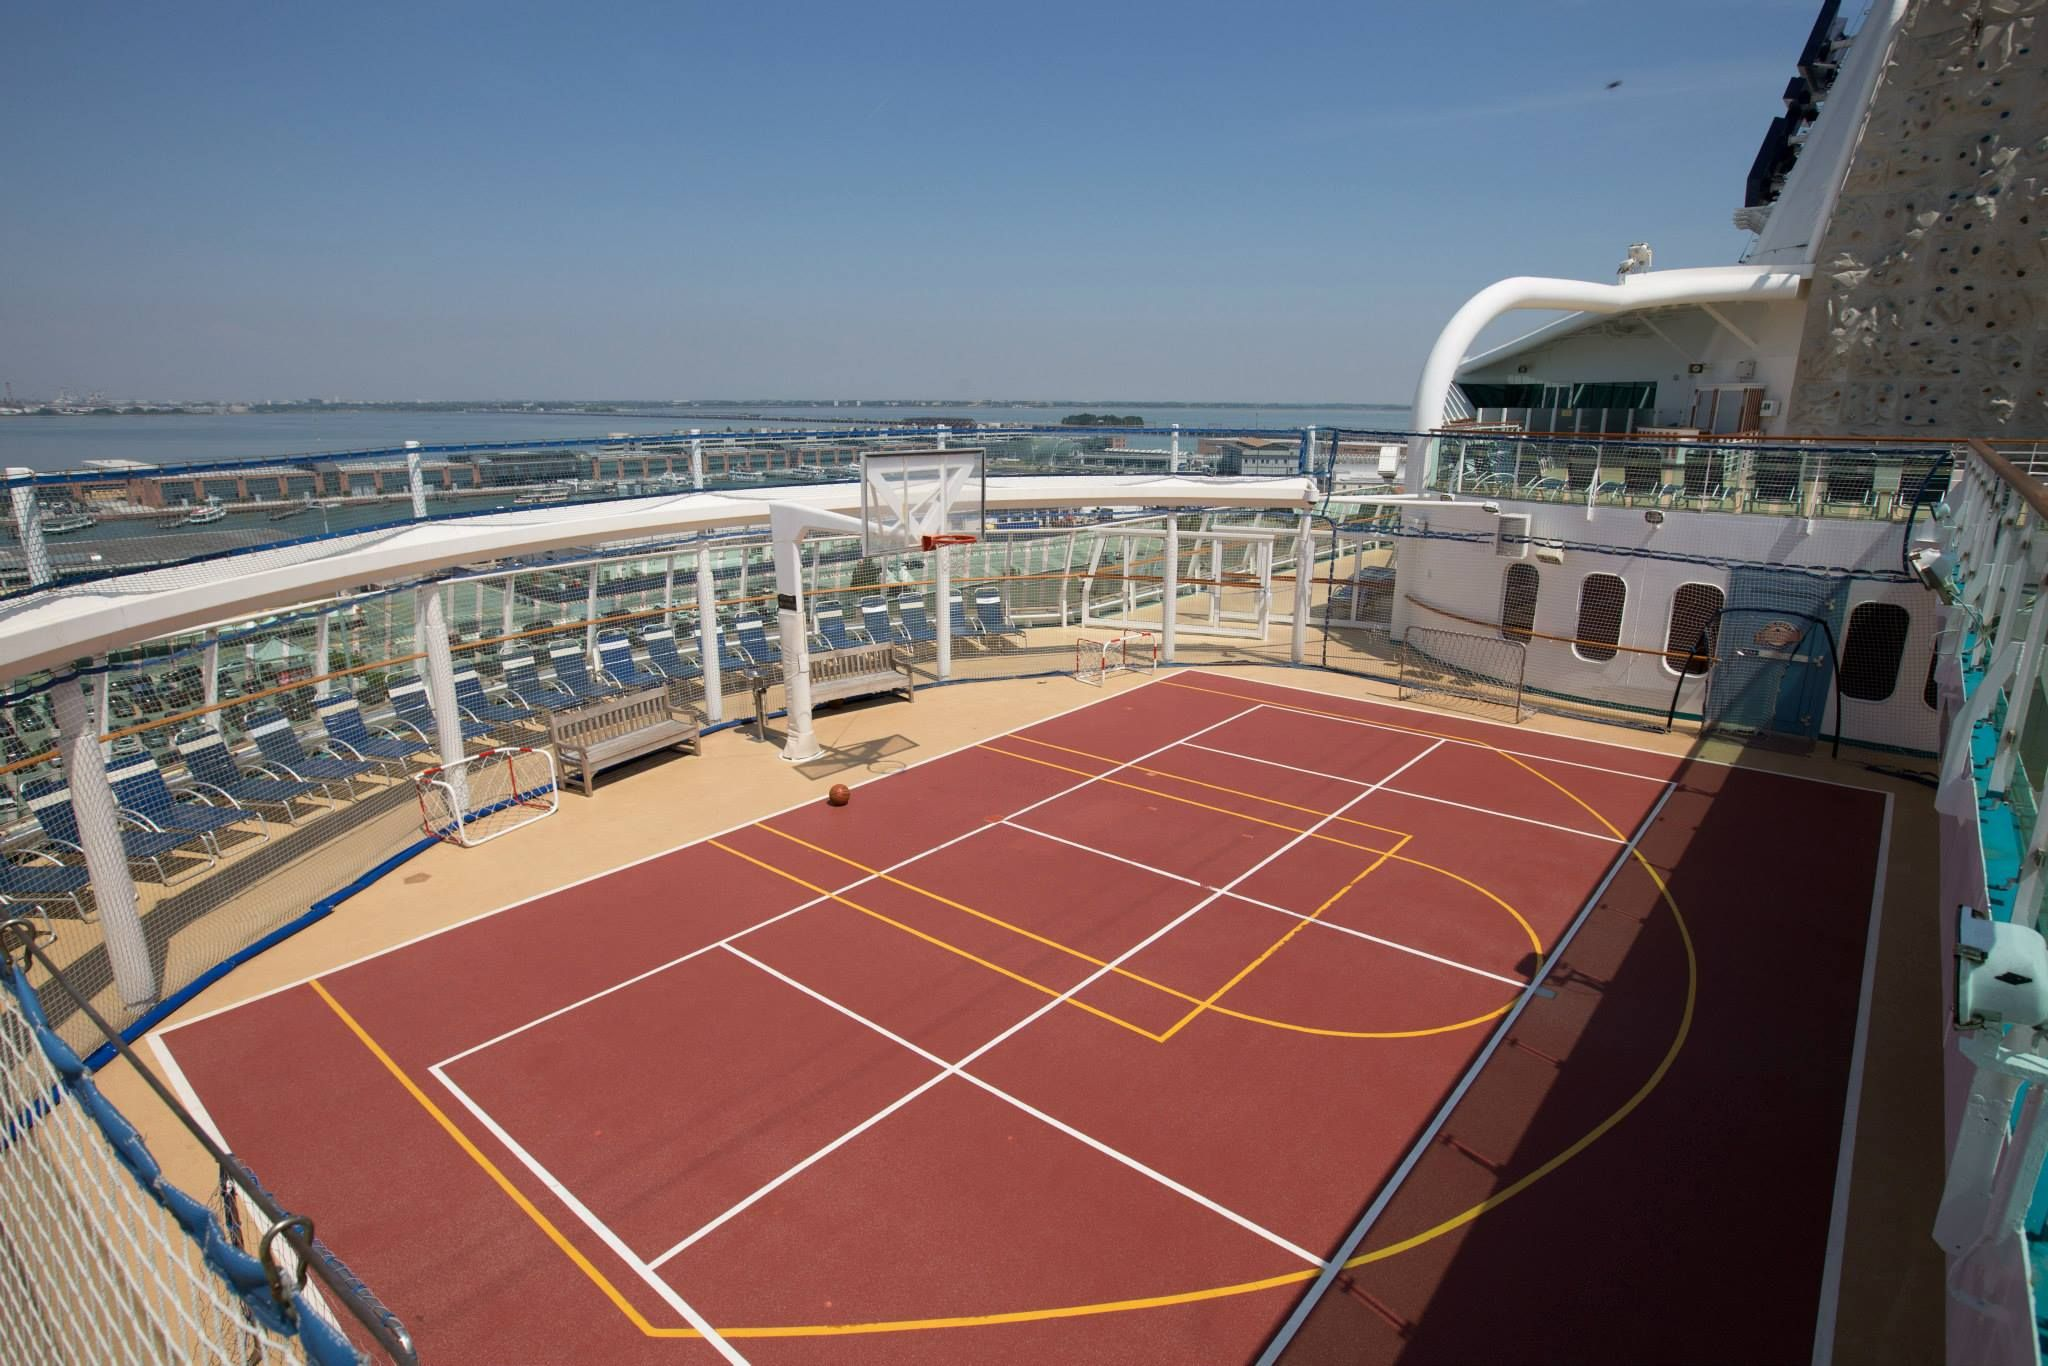 Serenade of the seas campo da basket serenadeoftheseas for Campo da basket regolamentare